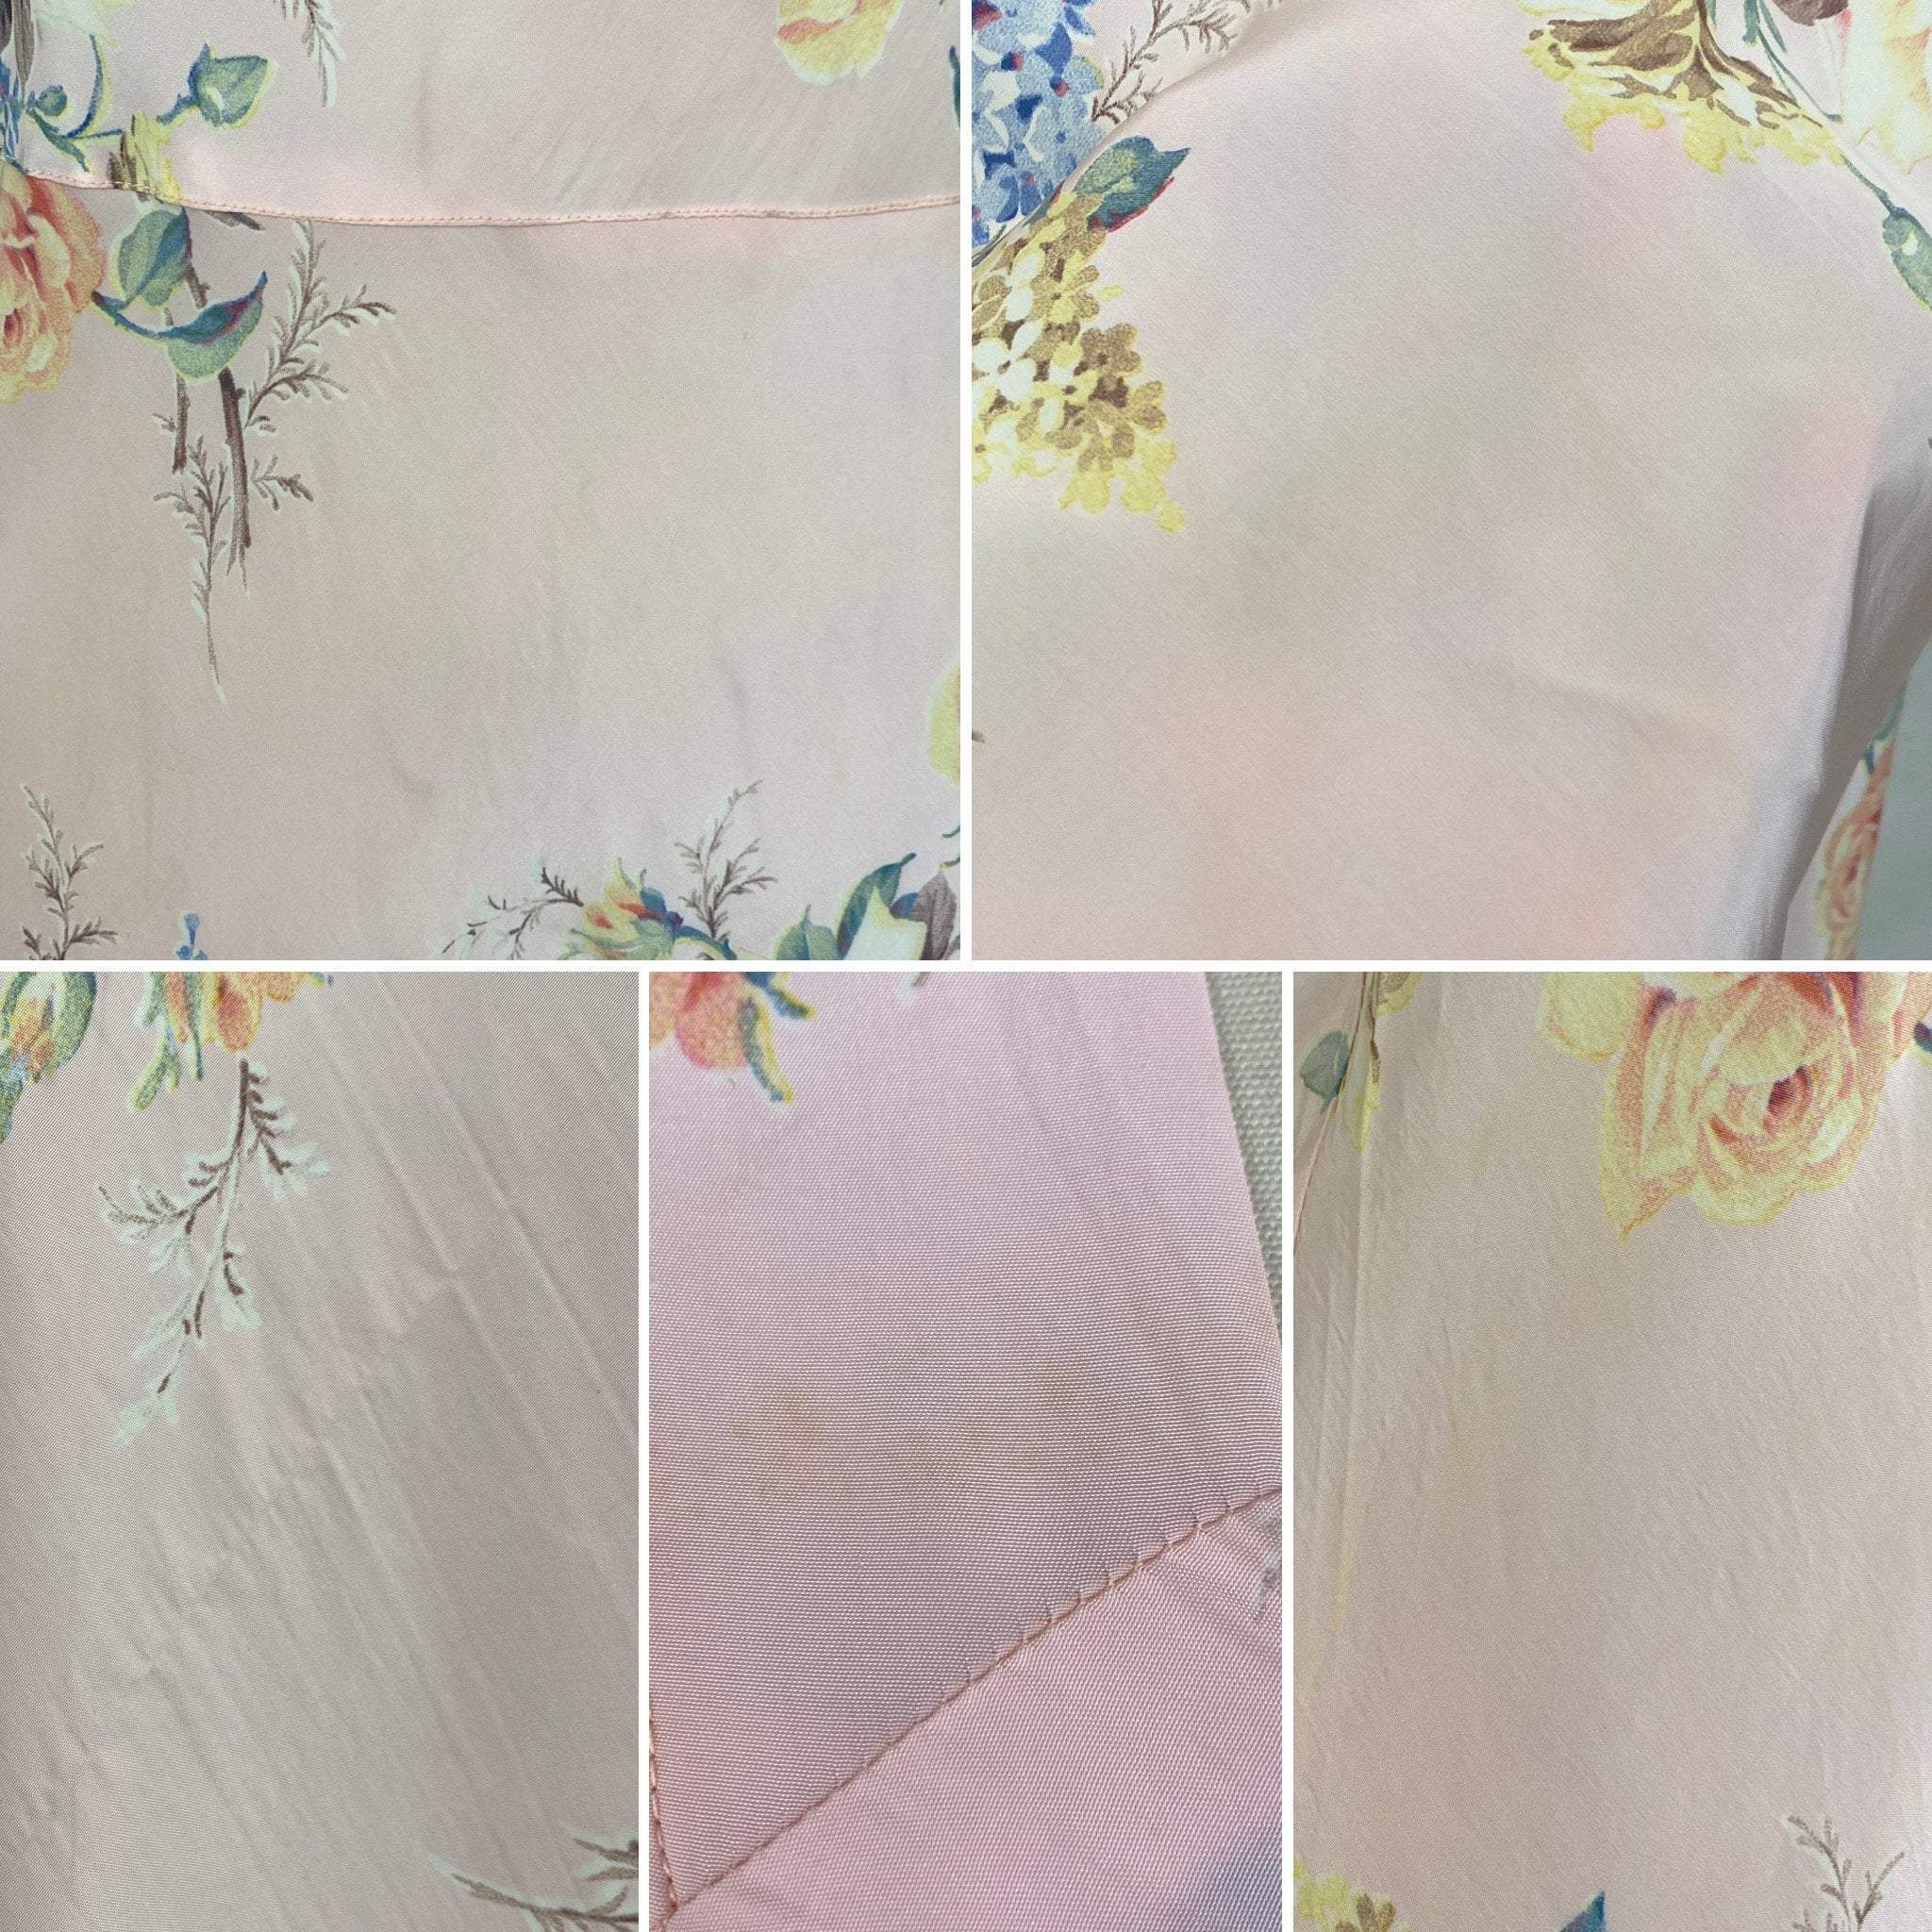 Vintage 1940's Nightgown | Baby Pink with Bold Floral Print | Size 34-36 Bust, S, M | Radcliffe -Never Worn - Daggers & Dames